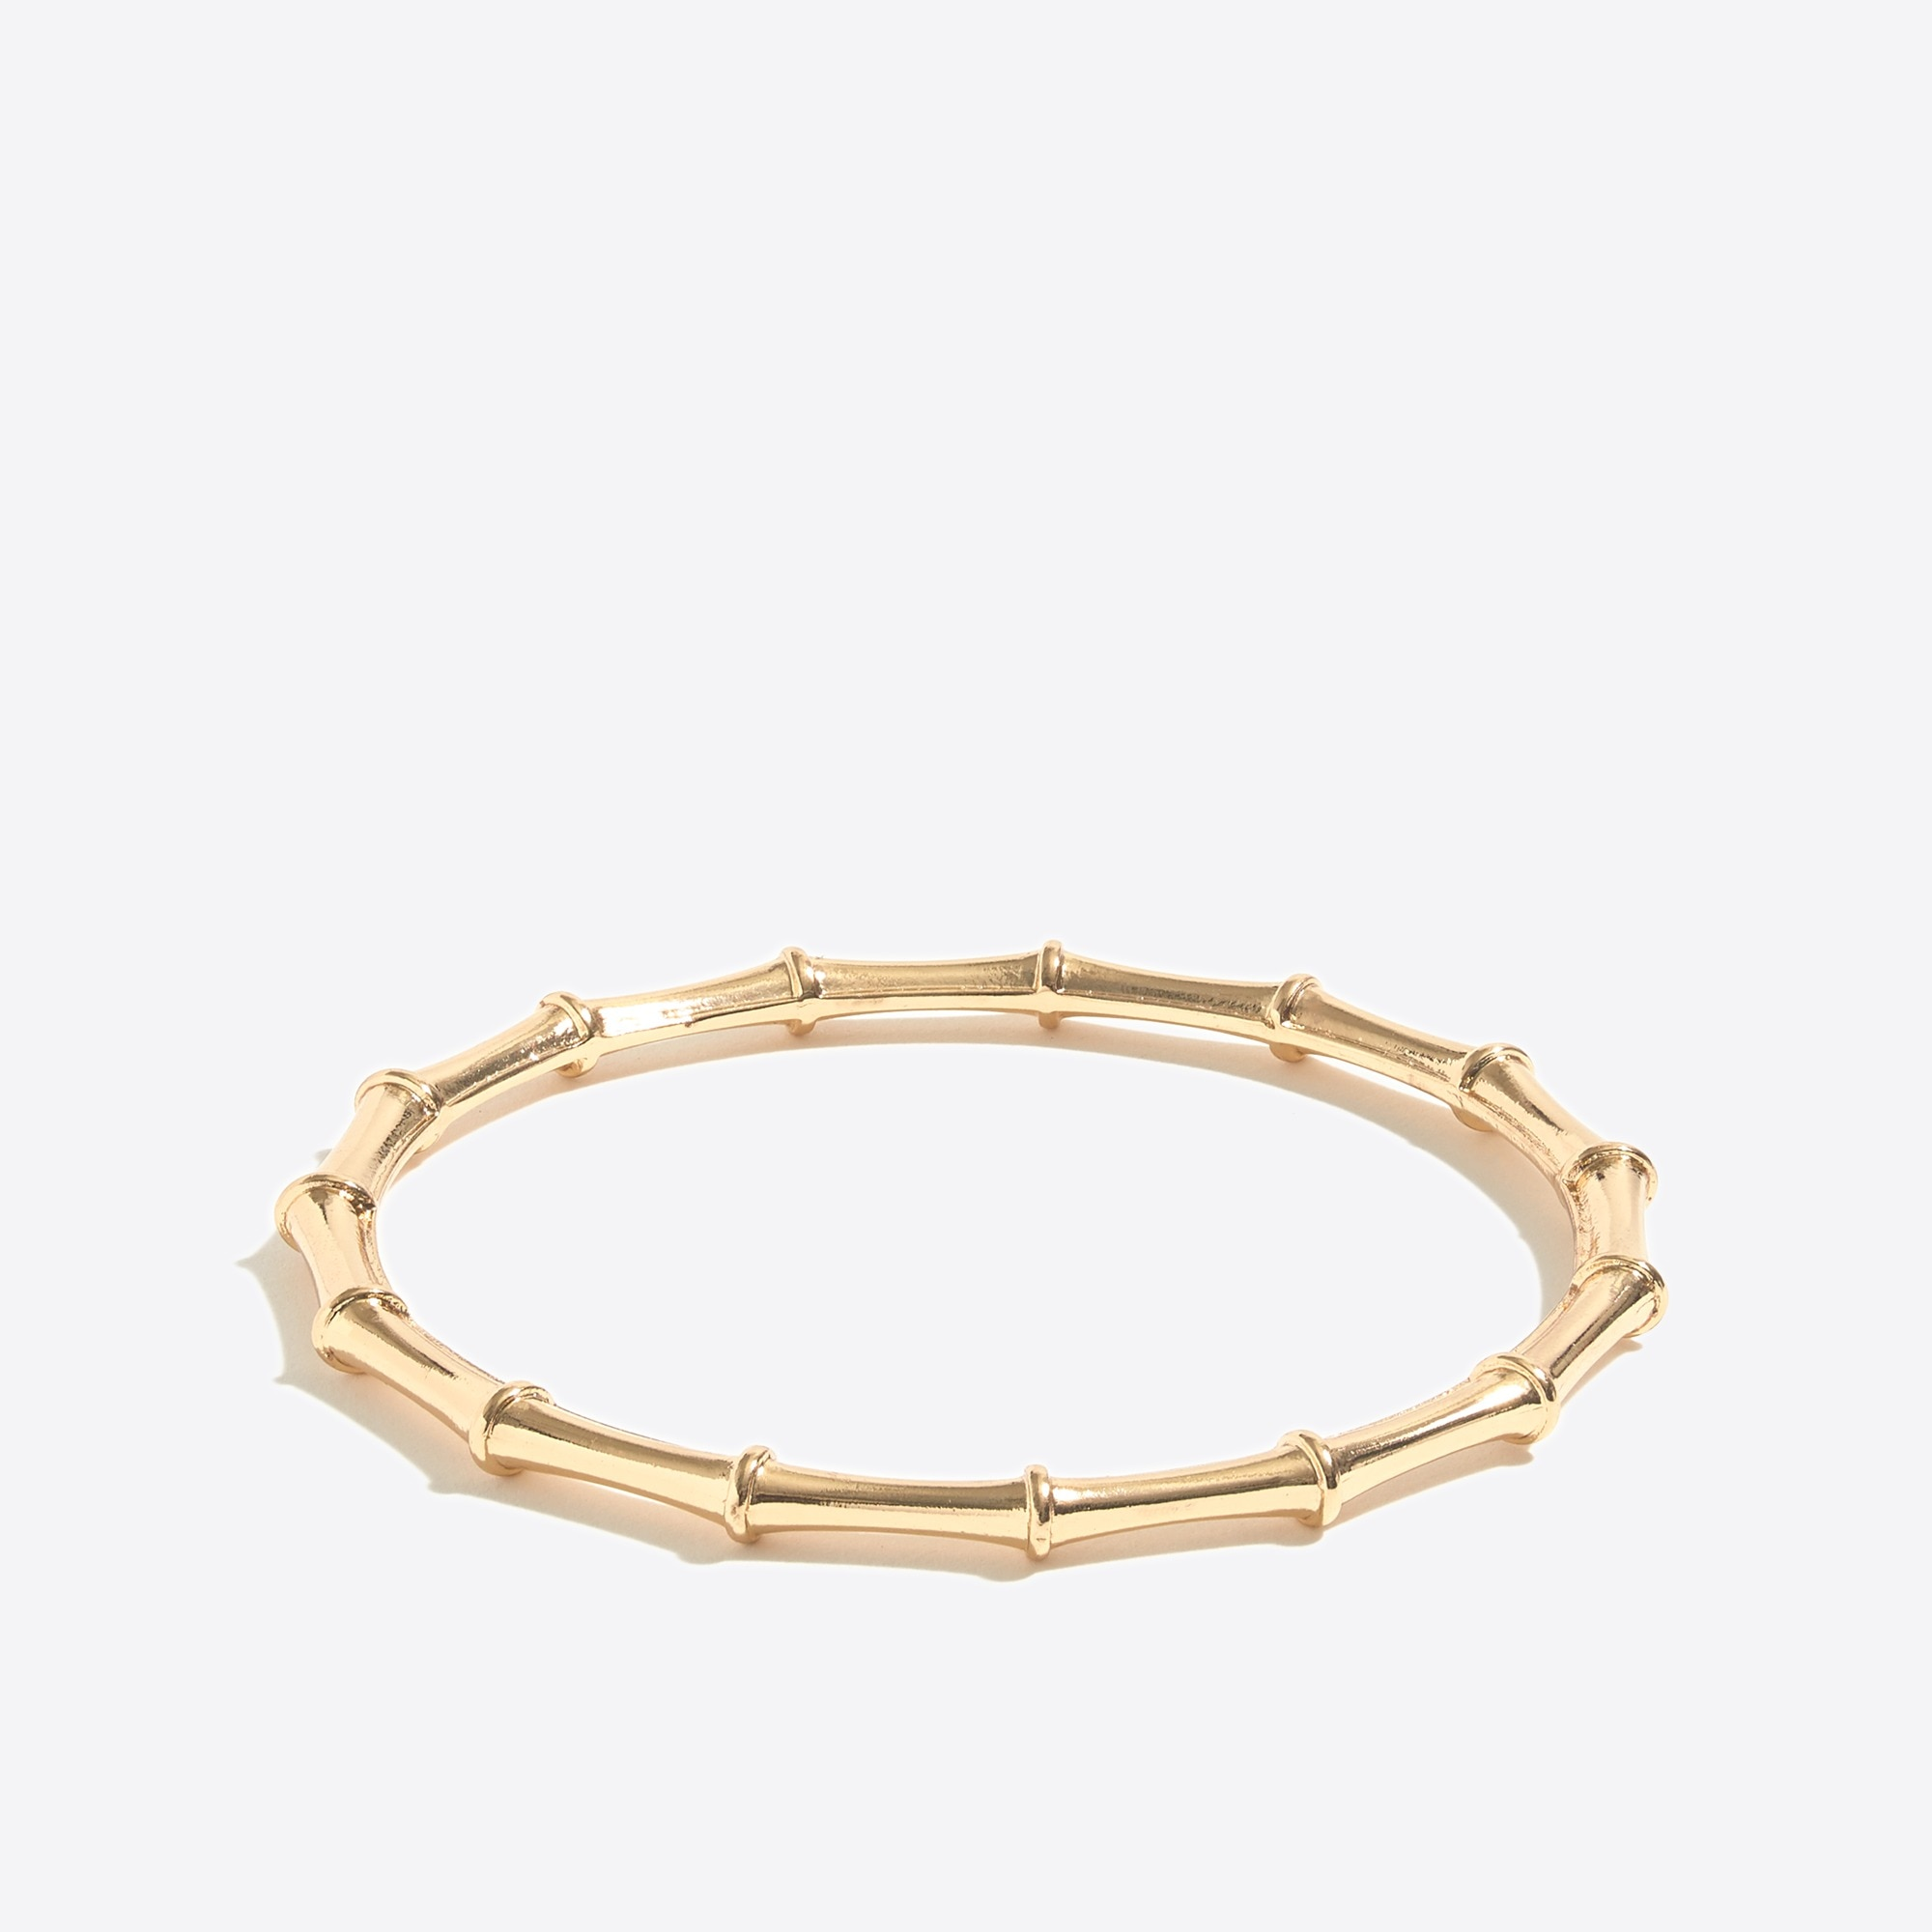 Image 1 for Golden bamboo bangle bracelet